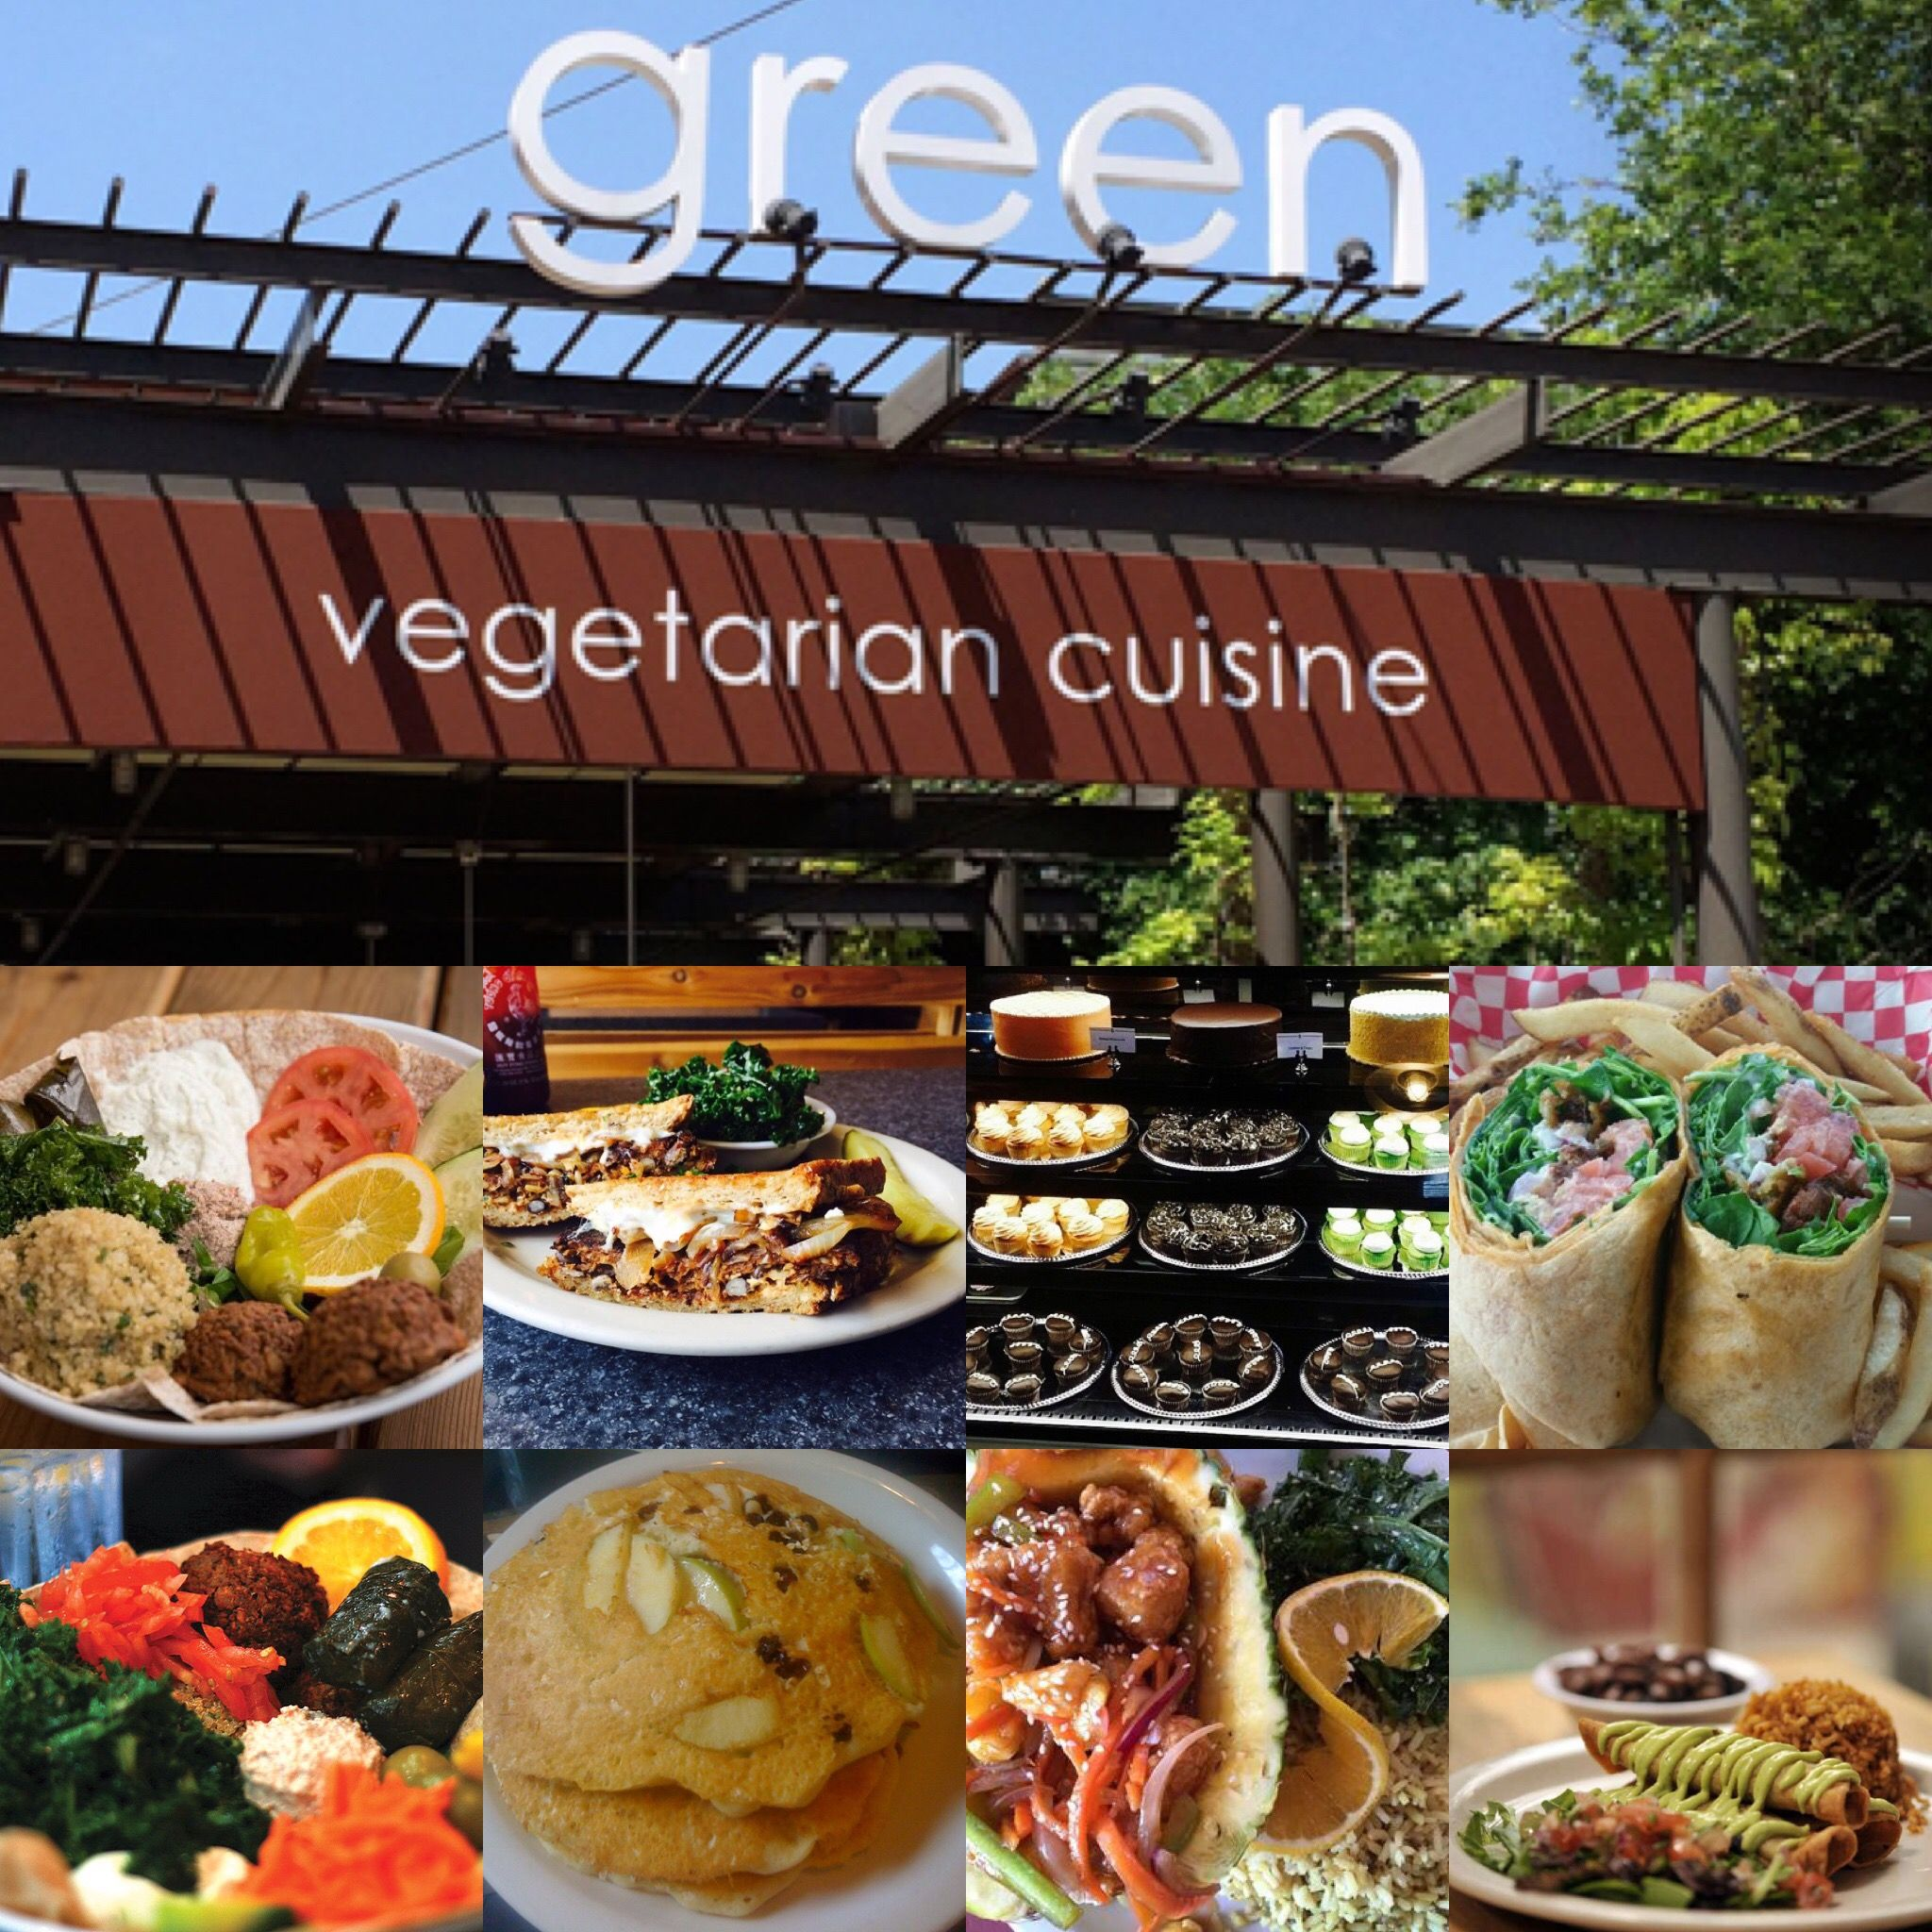 Green Vegetarian Cuisine Best Vegetarian Food In Town Located At 200 E Grayson St 120 San Anton Green Vegetarian Cuisine Vegetarian Cuisine Green Vegetarian